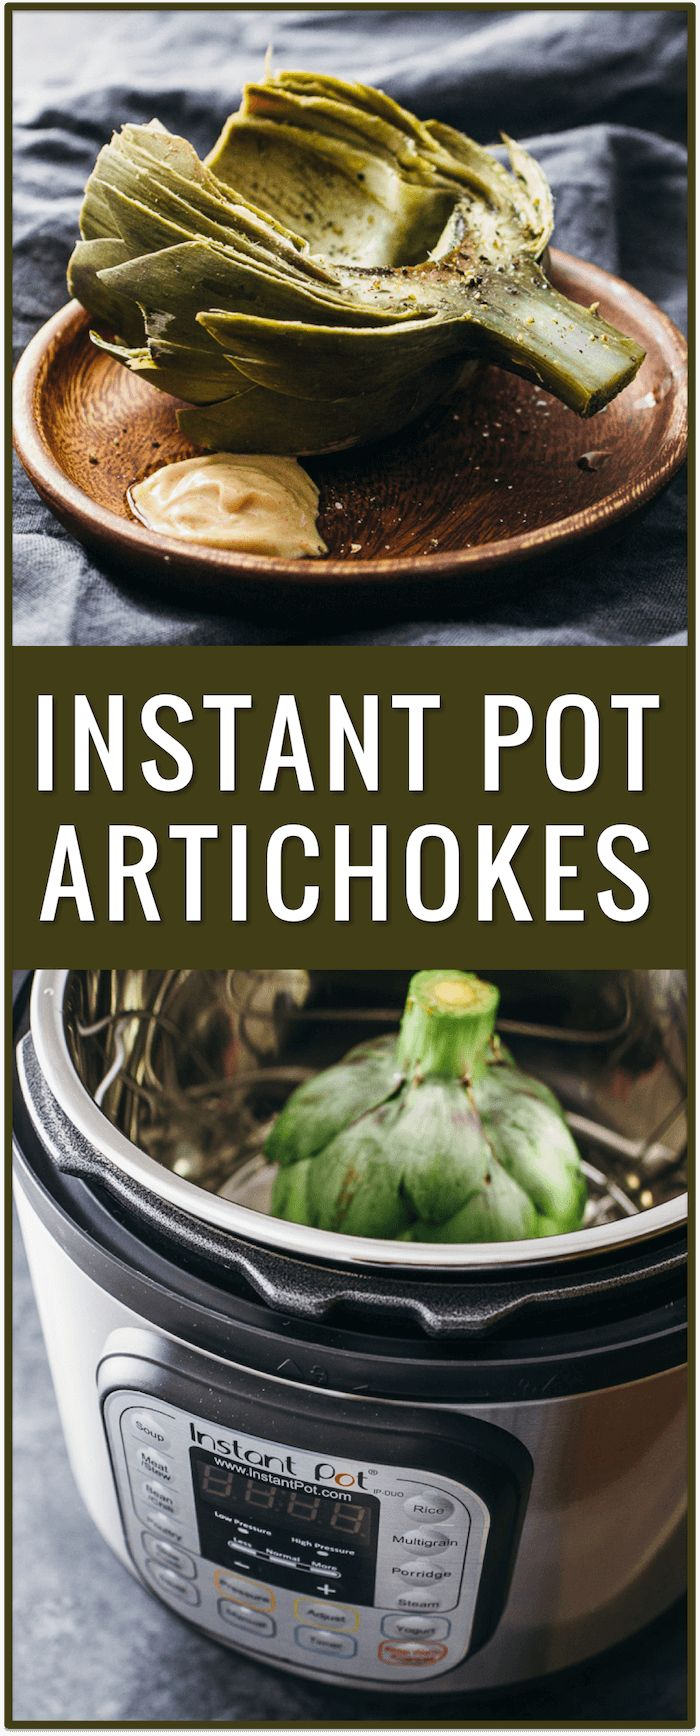 instant pot, electric pressure cooker, artichokes, dipping sauce, spicy garlic mustard dip, appetizer, dish, recipe, easy, simple, fast via @savory_tooth